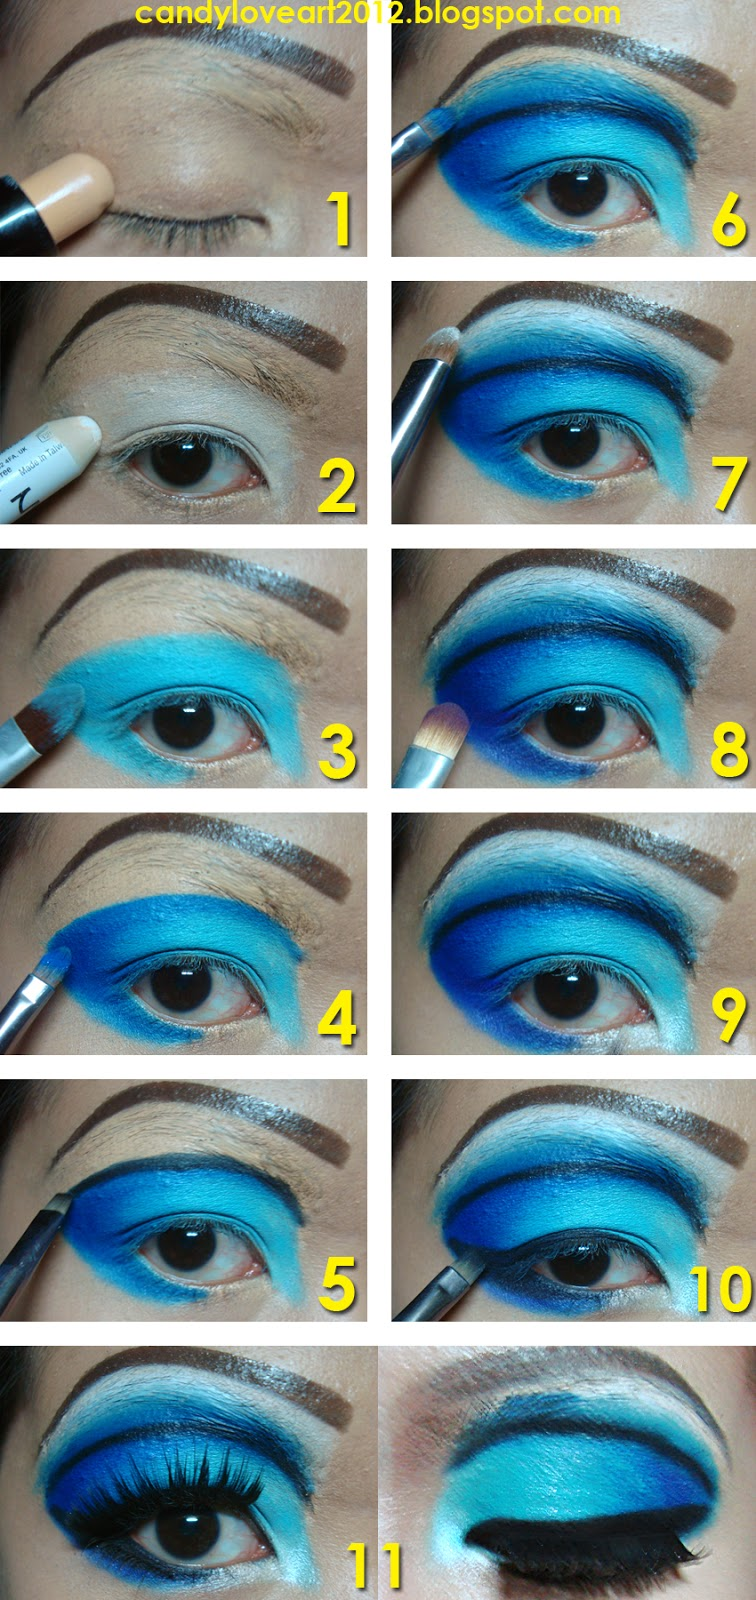 Candyloveart my drag queen makeup look a makeup collaboration candyloveart baditri Images